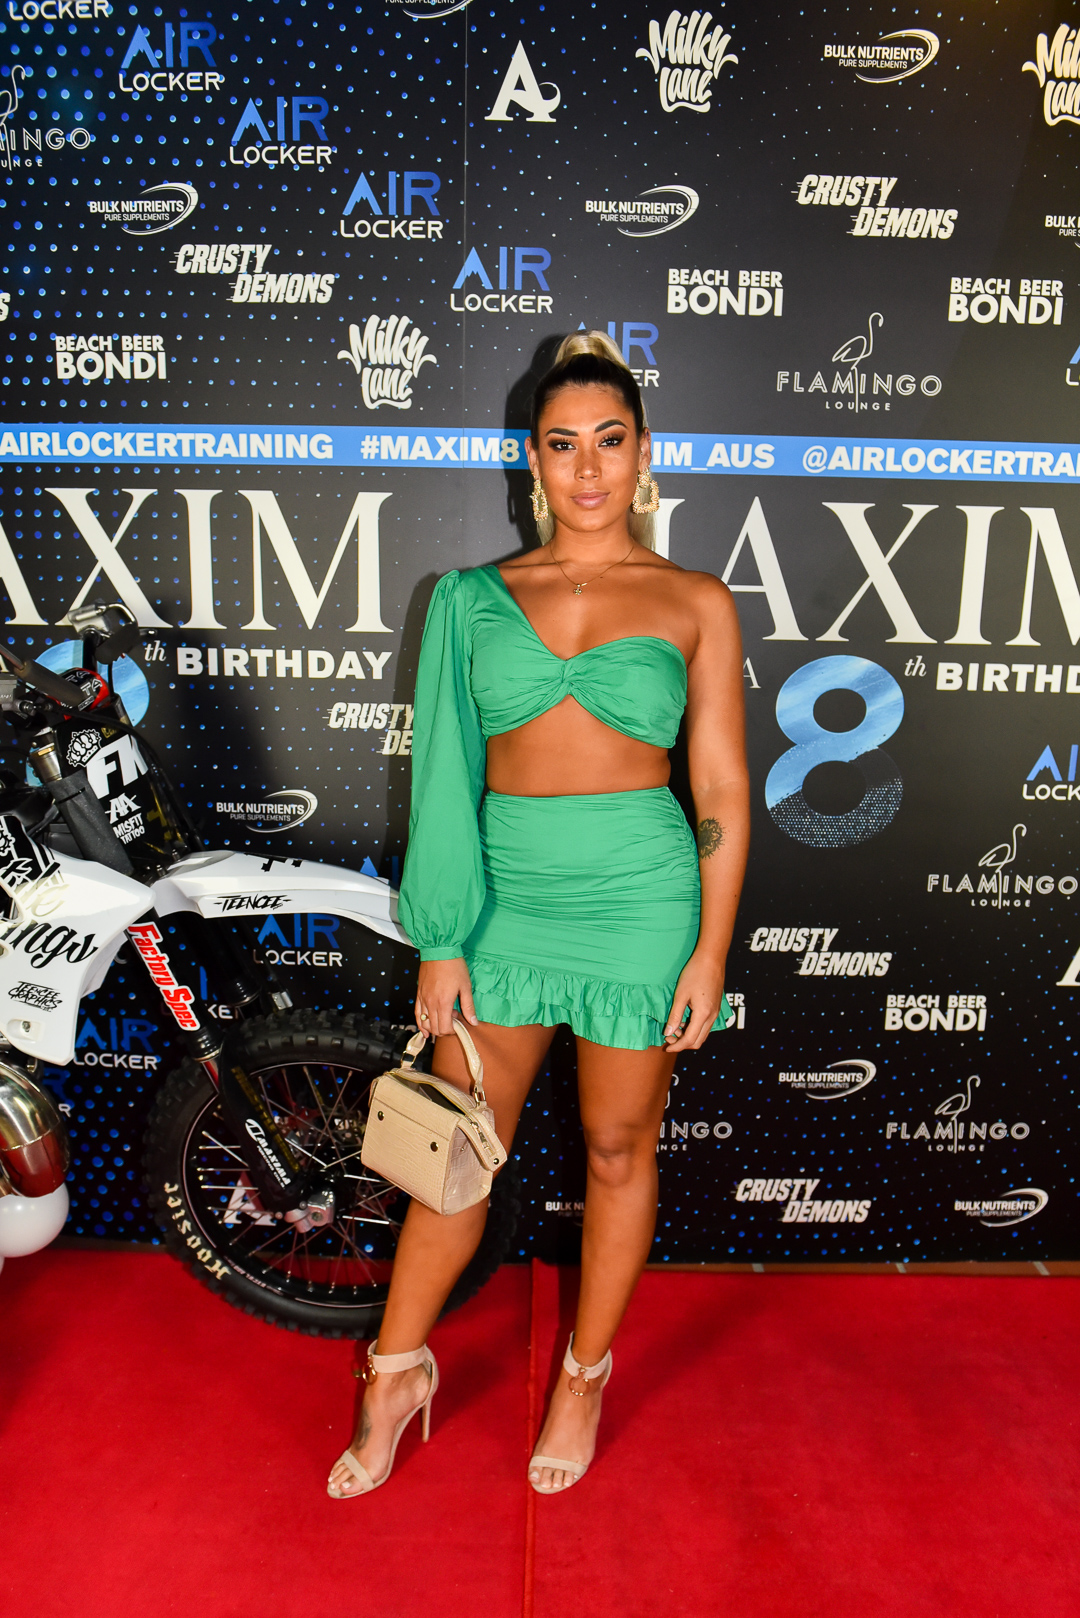 MAXIM_Australia_8th Birthday_21